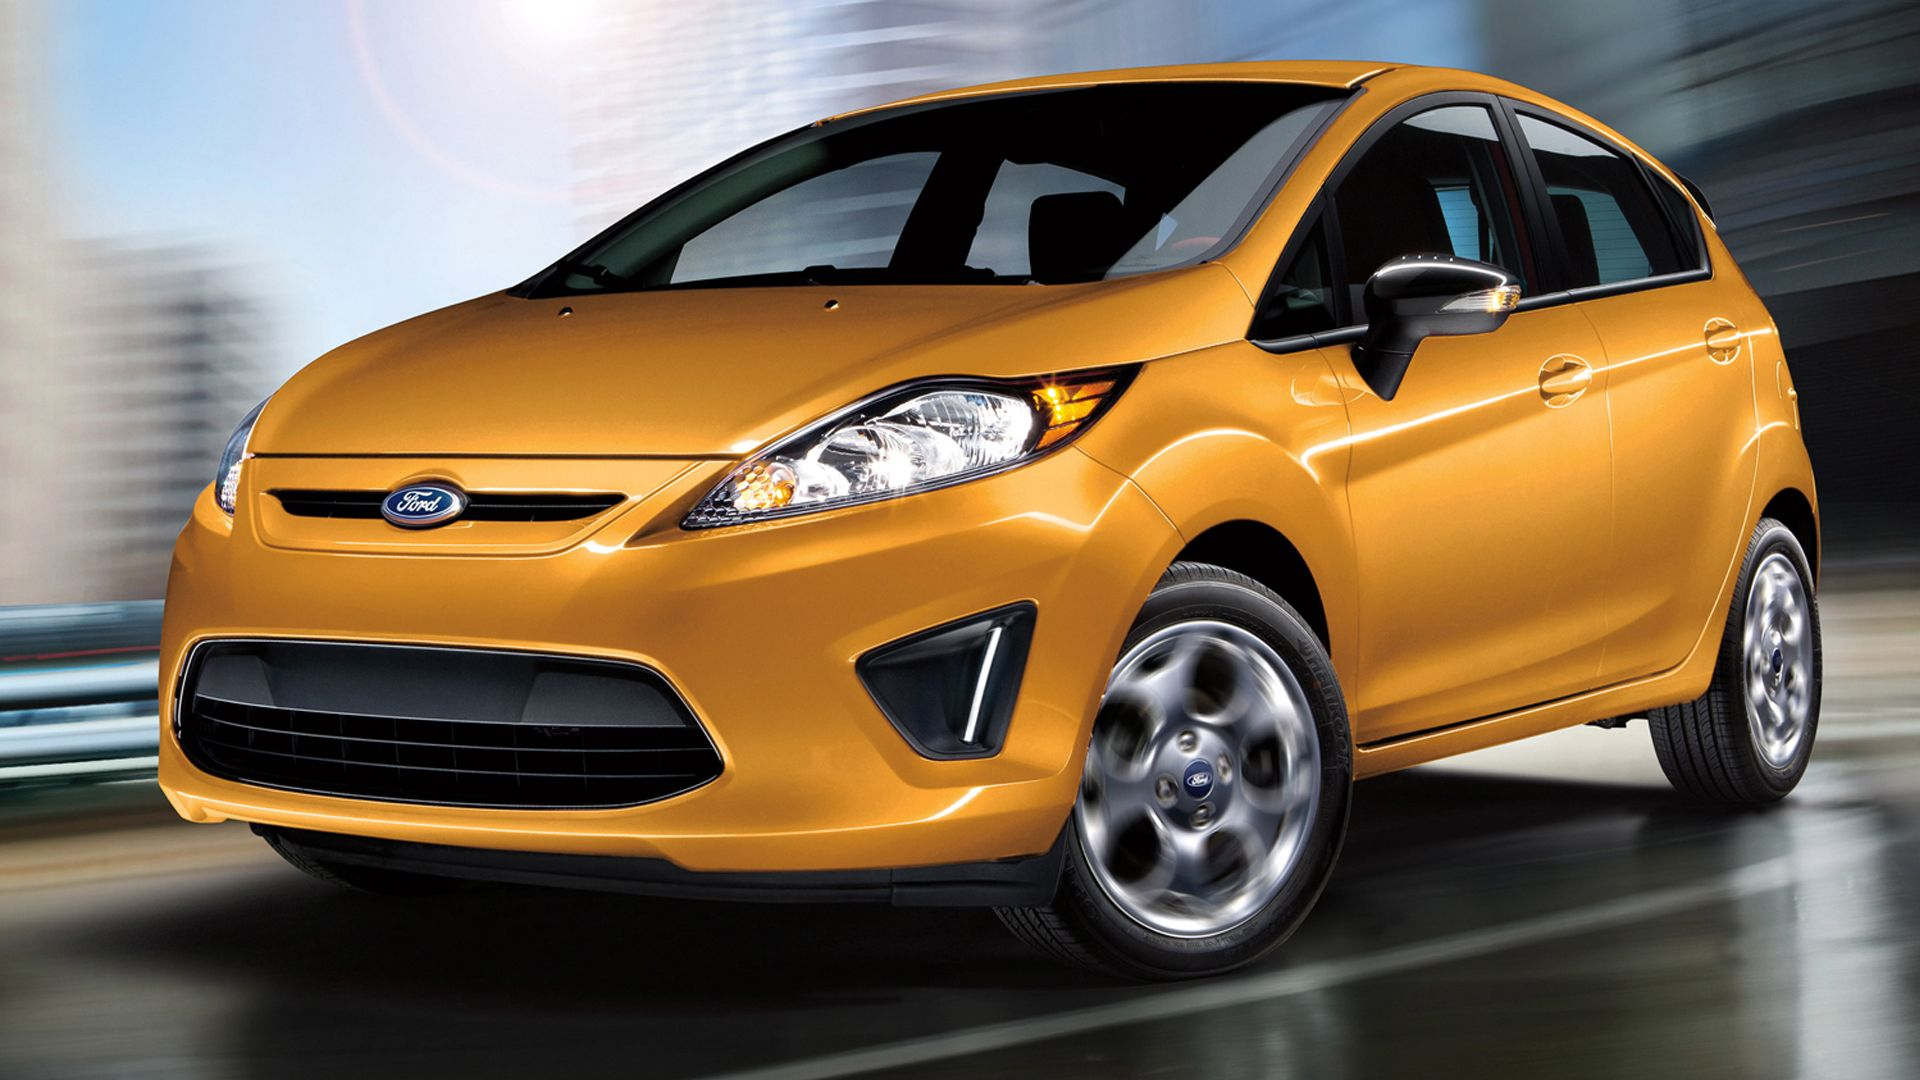 2013 Ford Fiesta Car Ford 2015 Cars Ford News